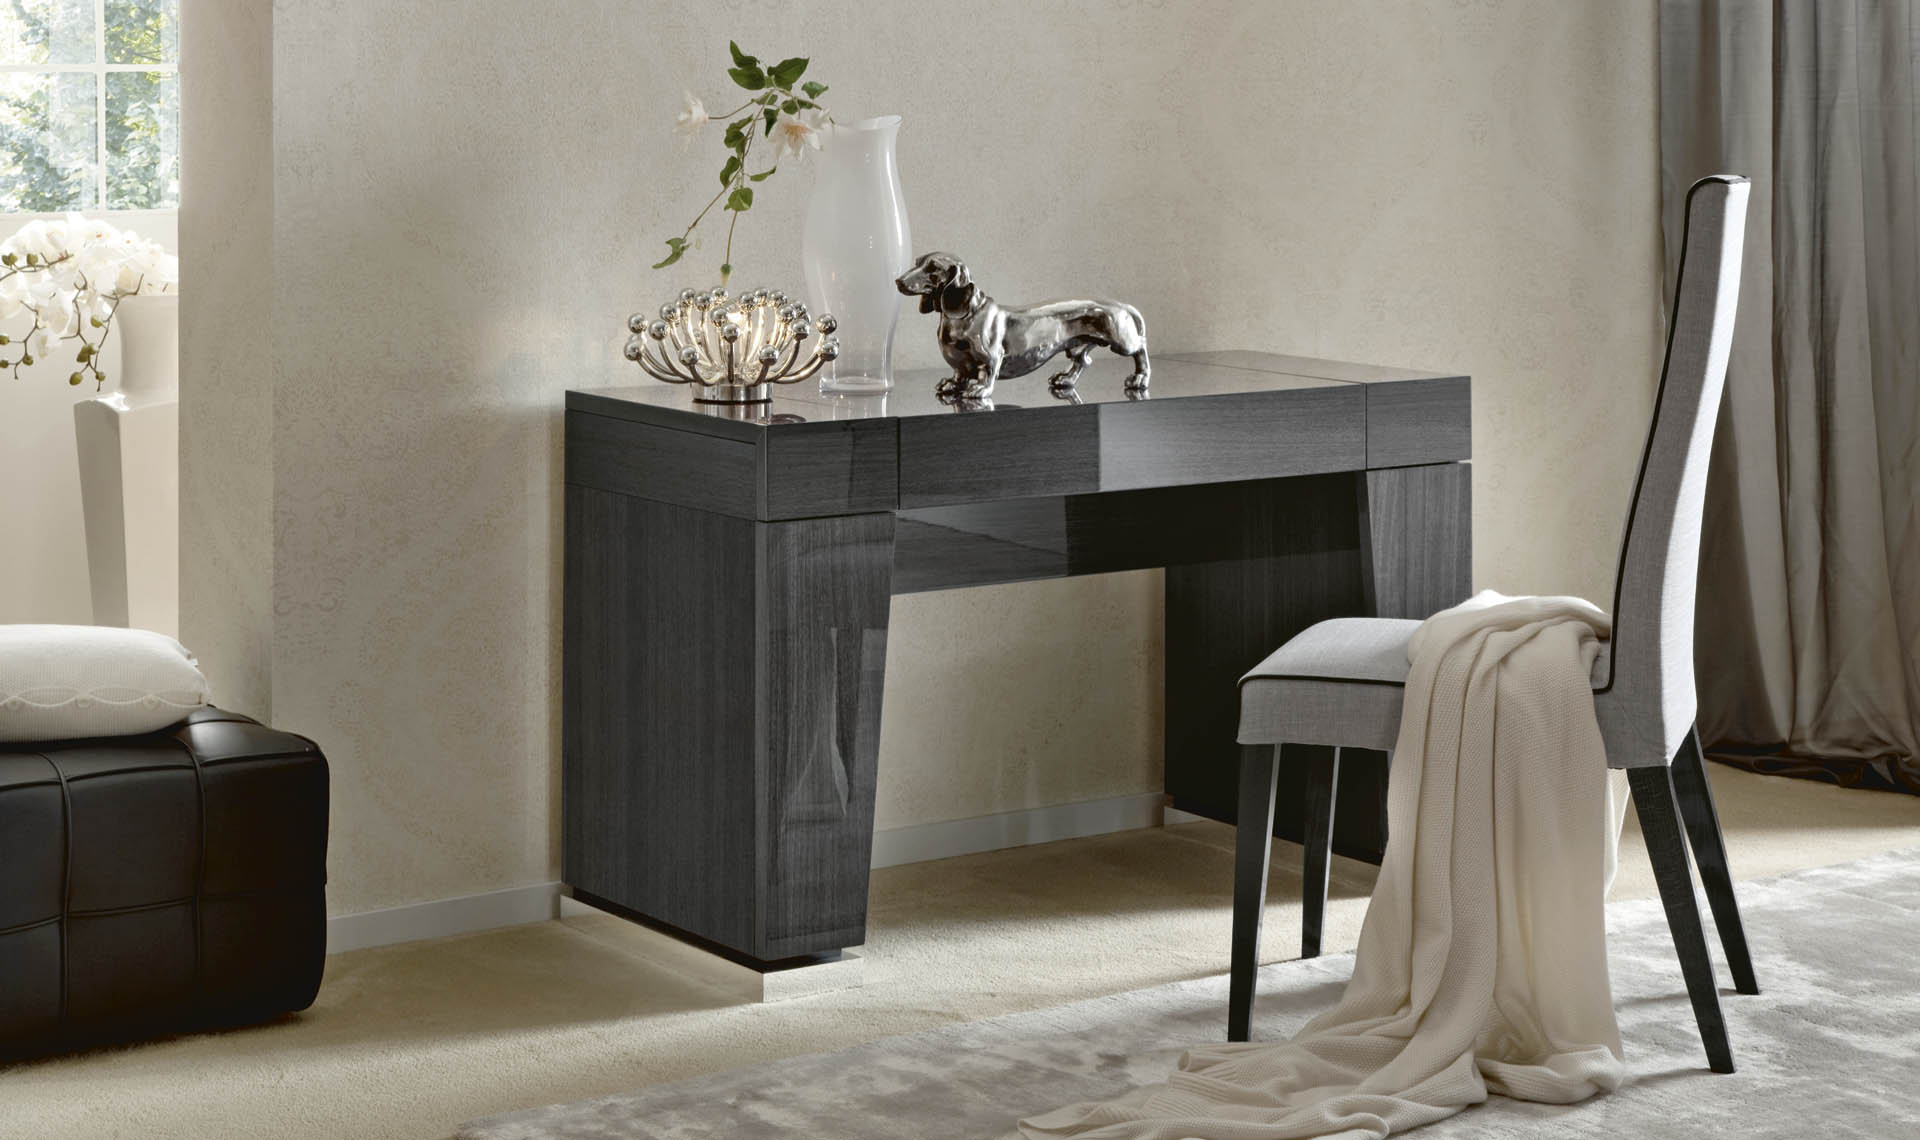 Montecarlo Bedroom Dressing Table & Chair